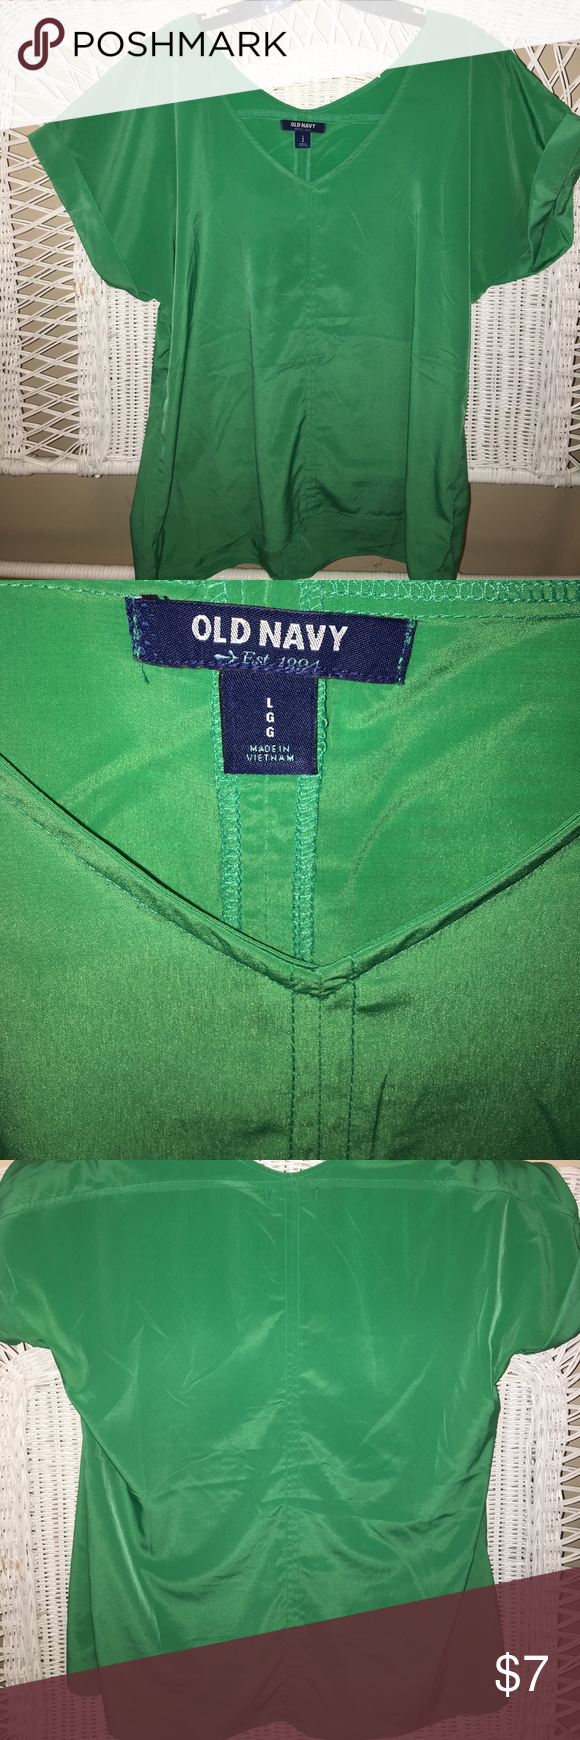 Old Navy green top 100% polyester, excellent used condition. Wrinkles steam out easily. Wears well with leggings Old Navy Tops Tunics